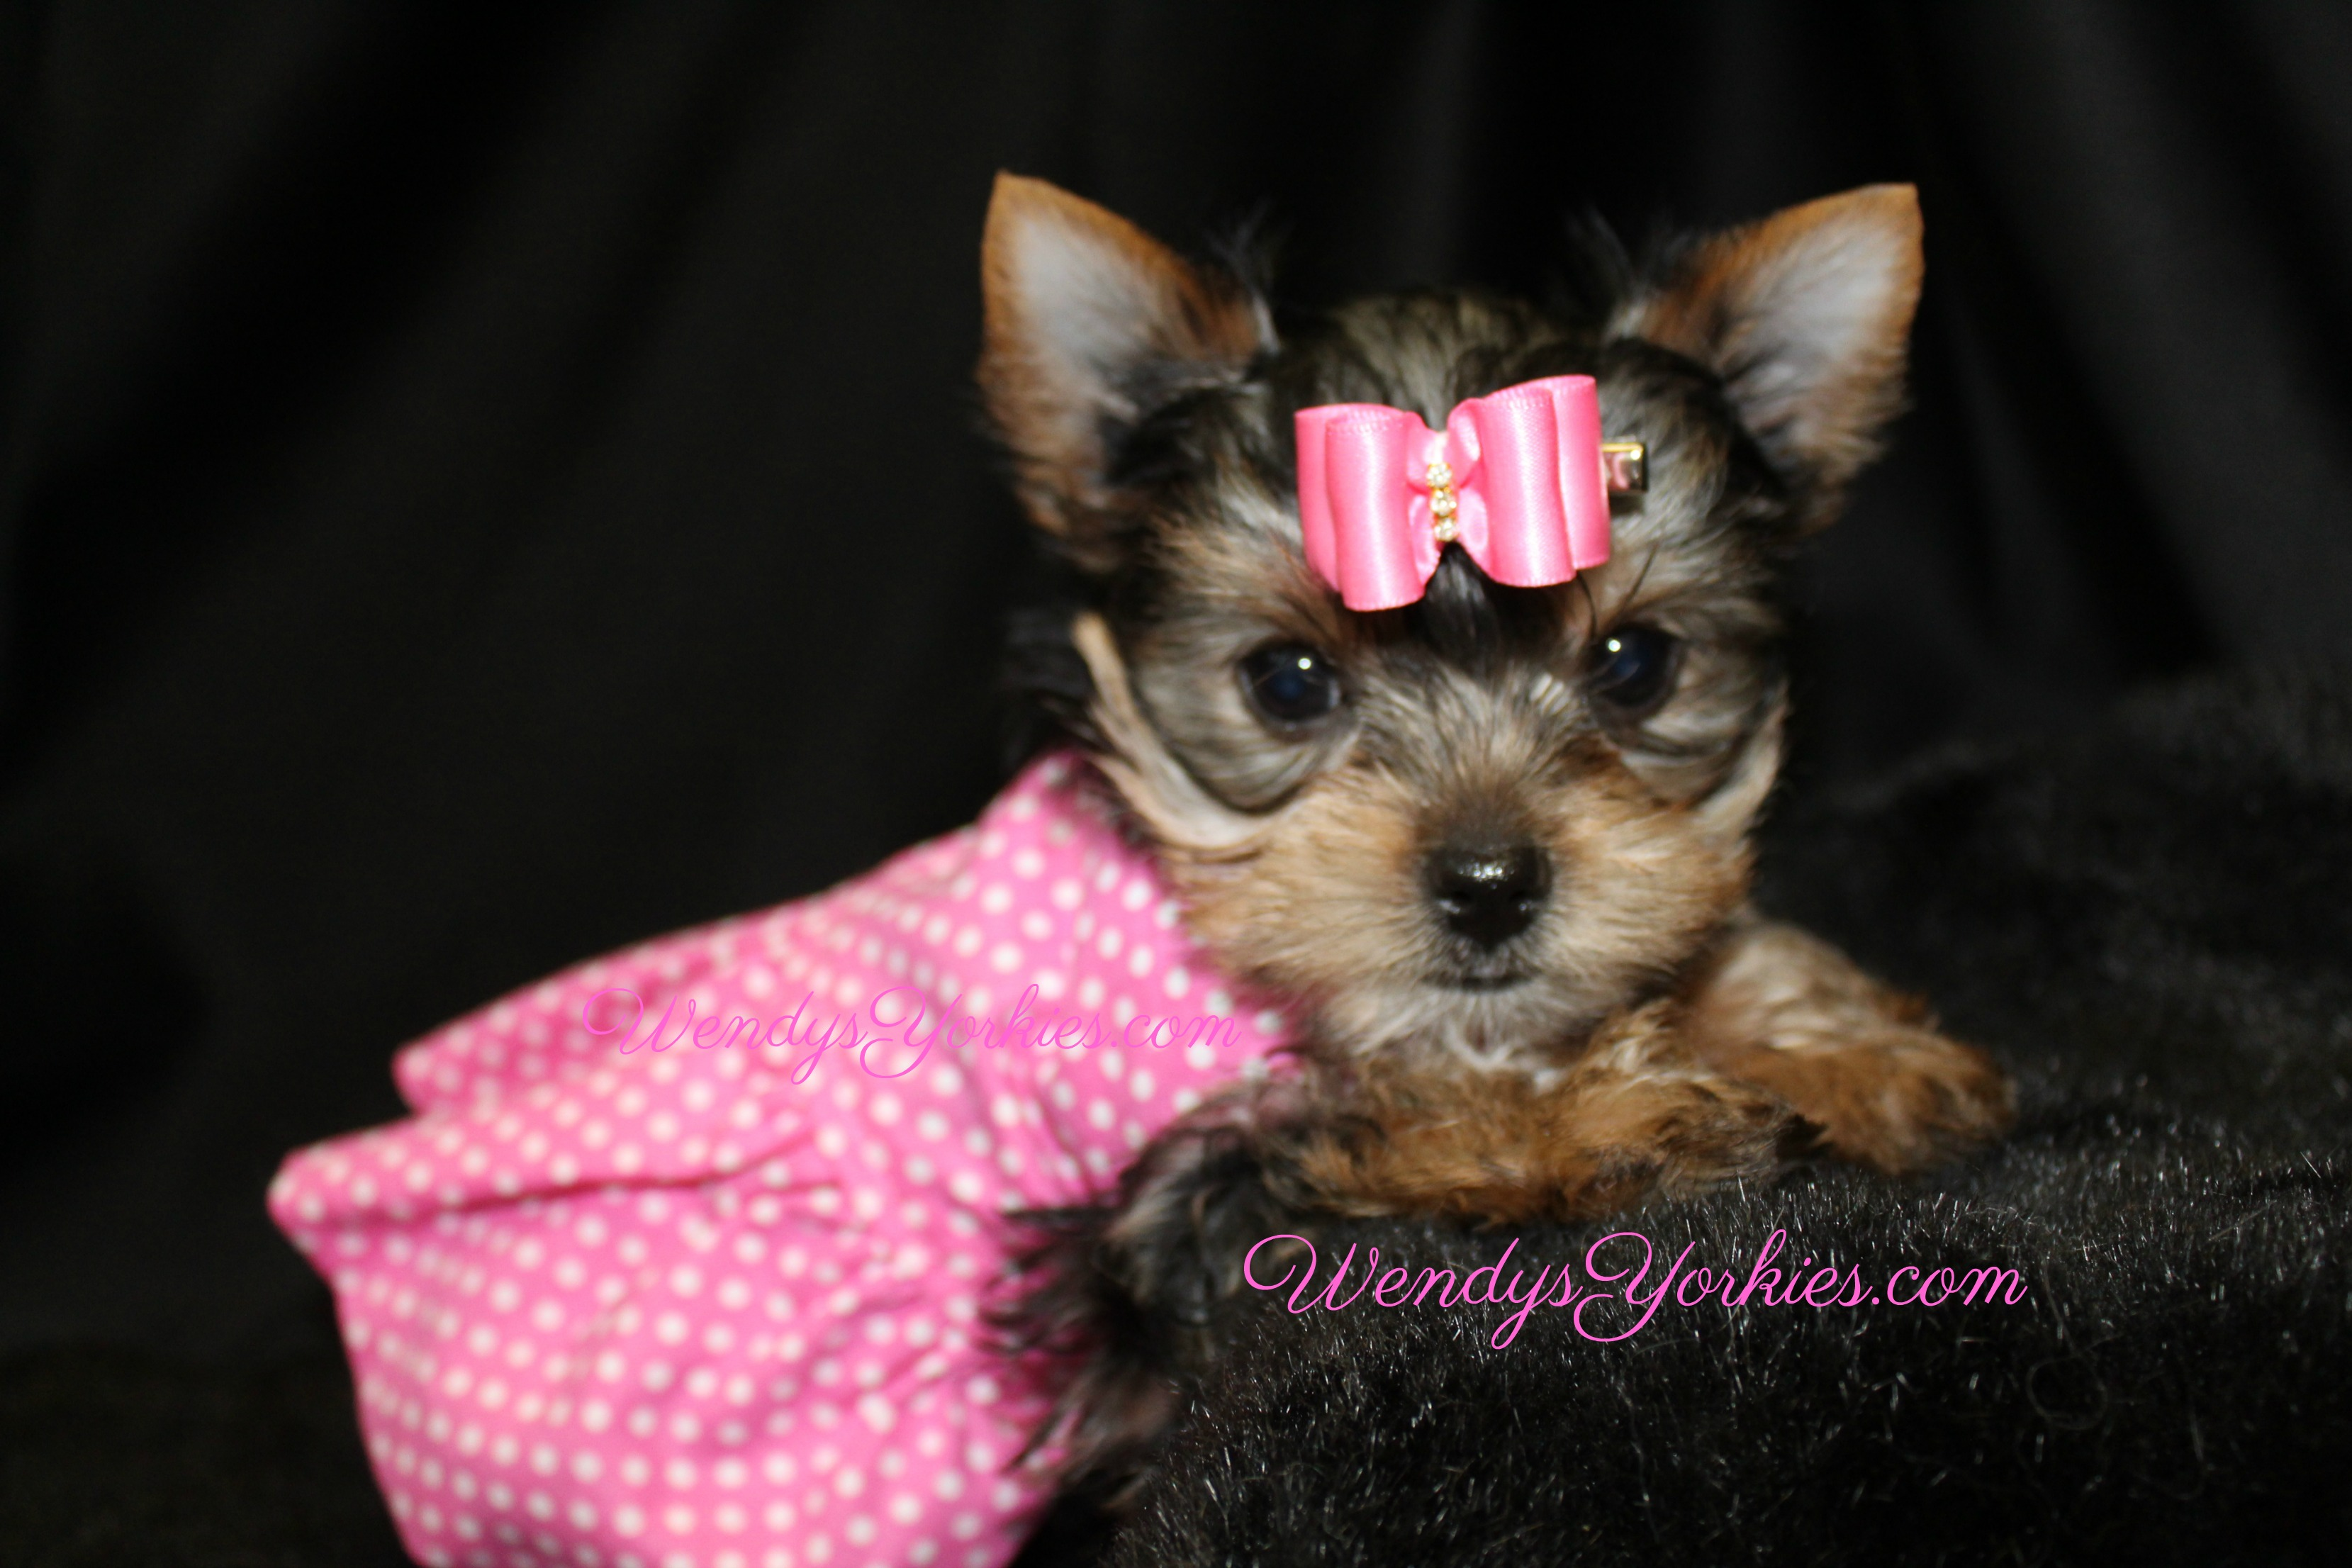 Teacup Yorkie puppy for sale, WendysYorkies.com, Loulou f2